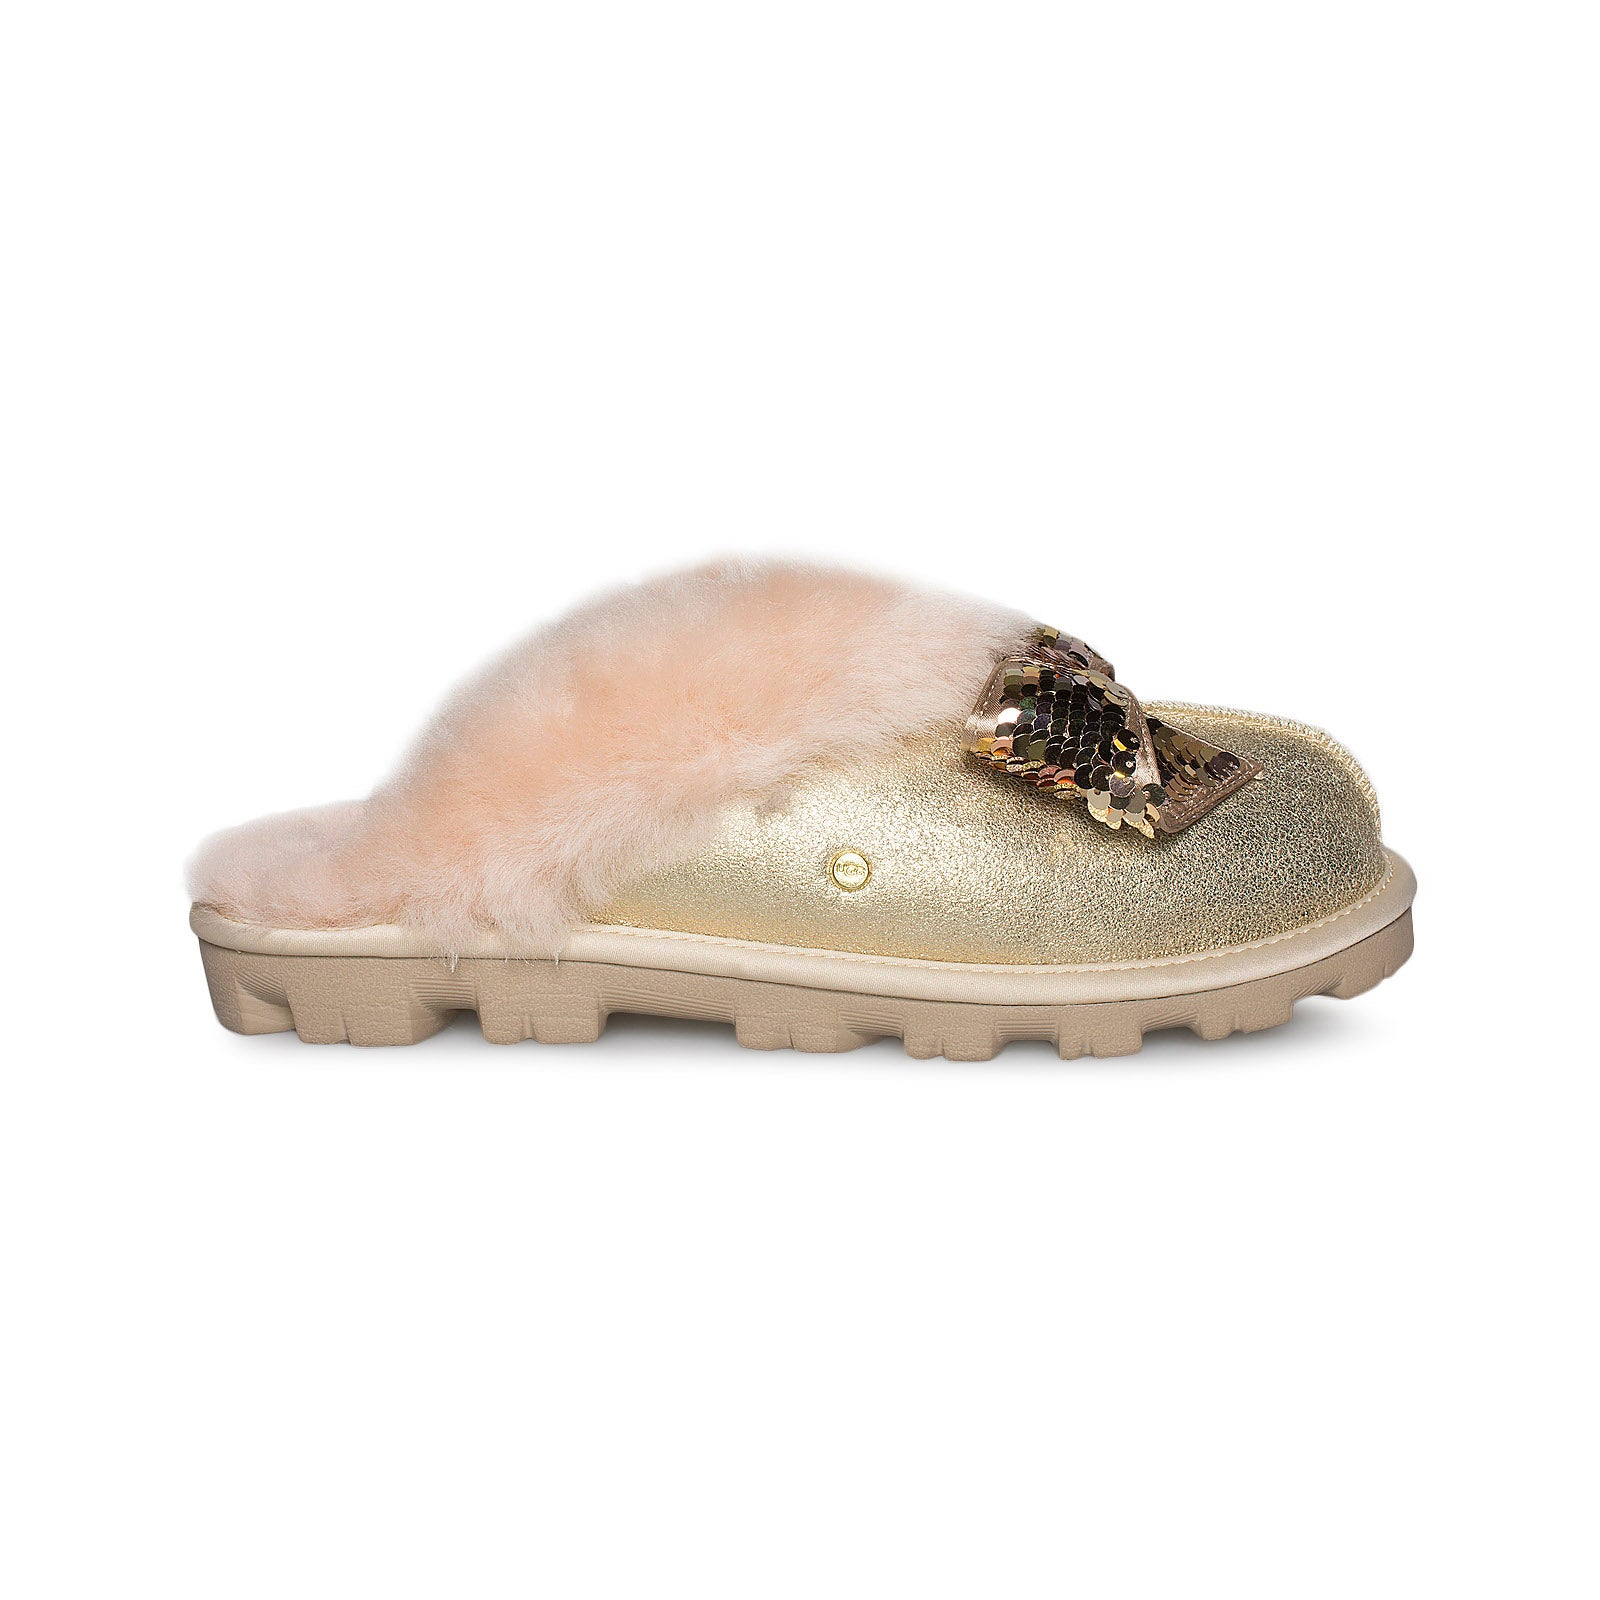 UGG Coquette Sequin Bow Gold Slippers Women's